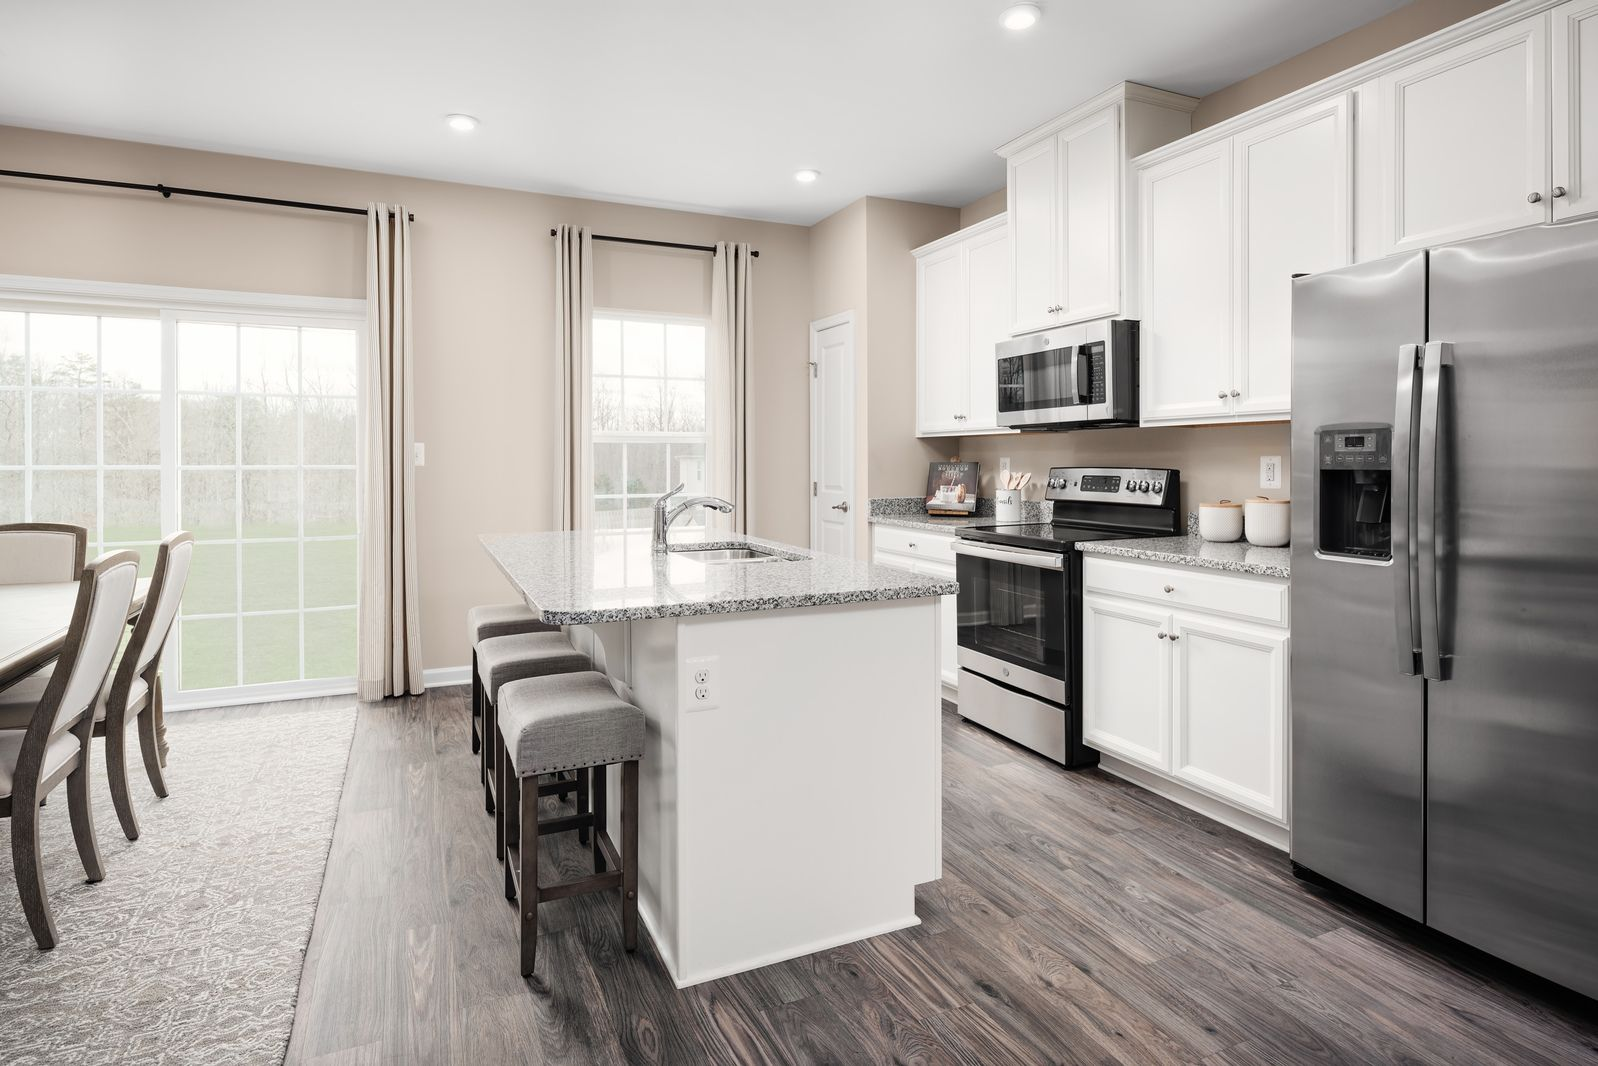 Kitchen featured in the Beethoven By Ryan Homes in Philadelphia, NJ